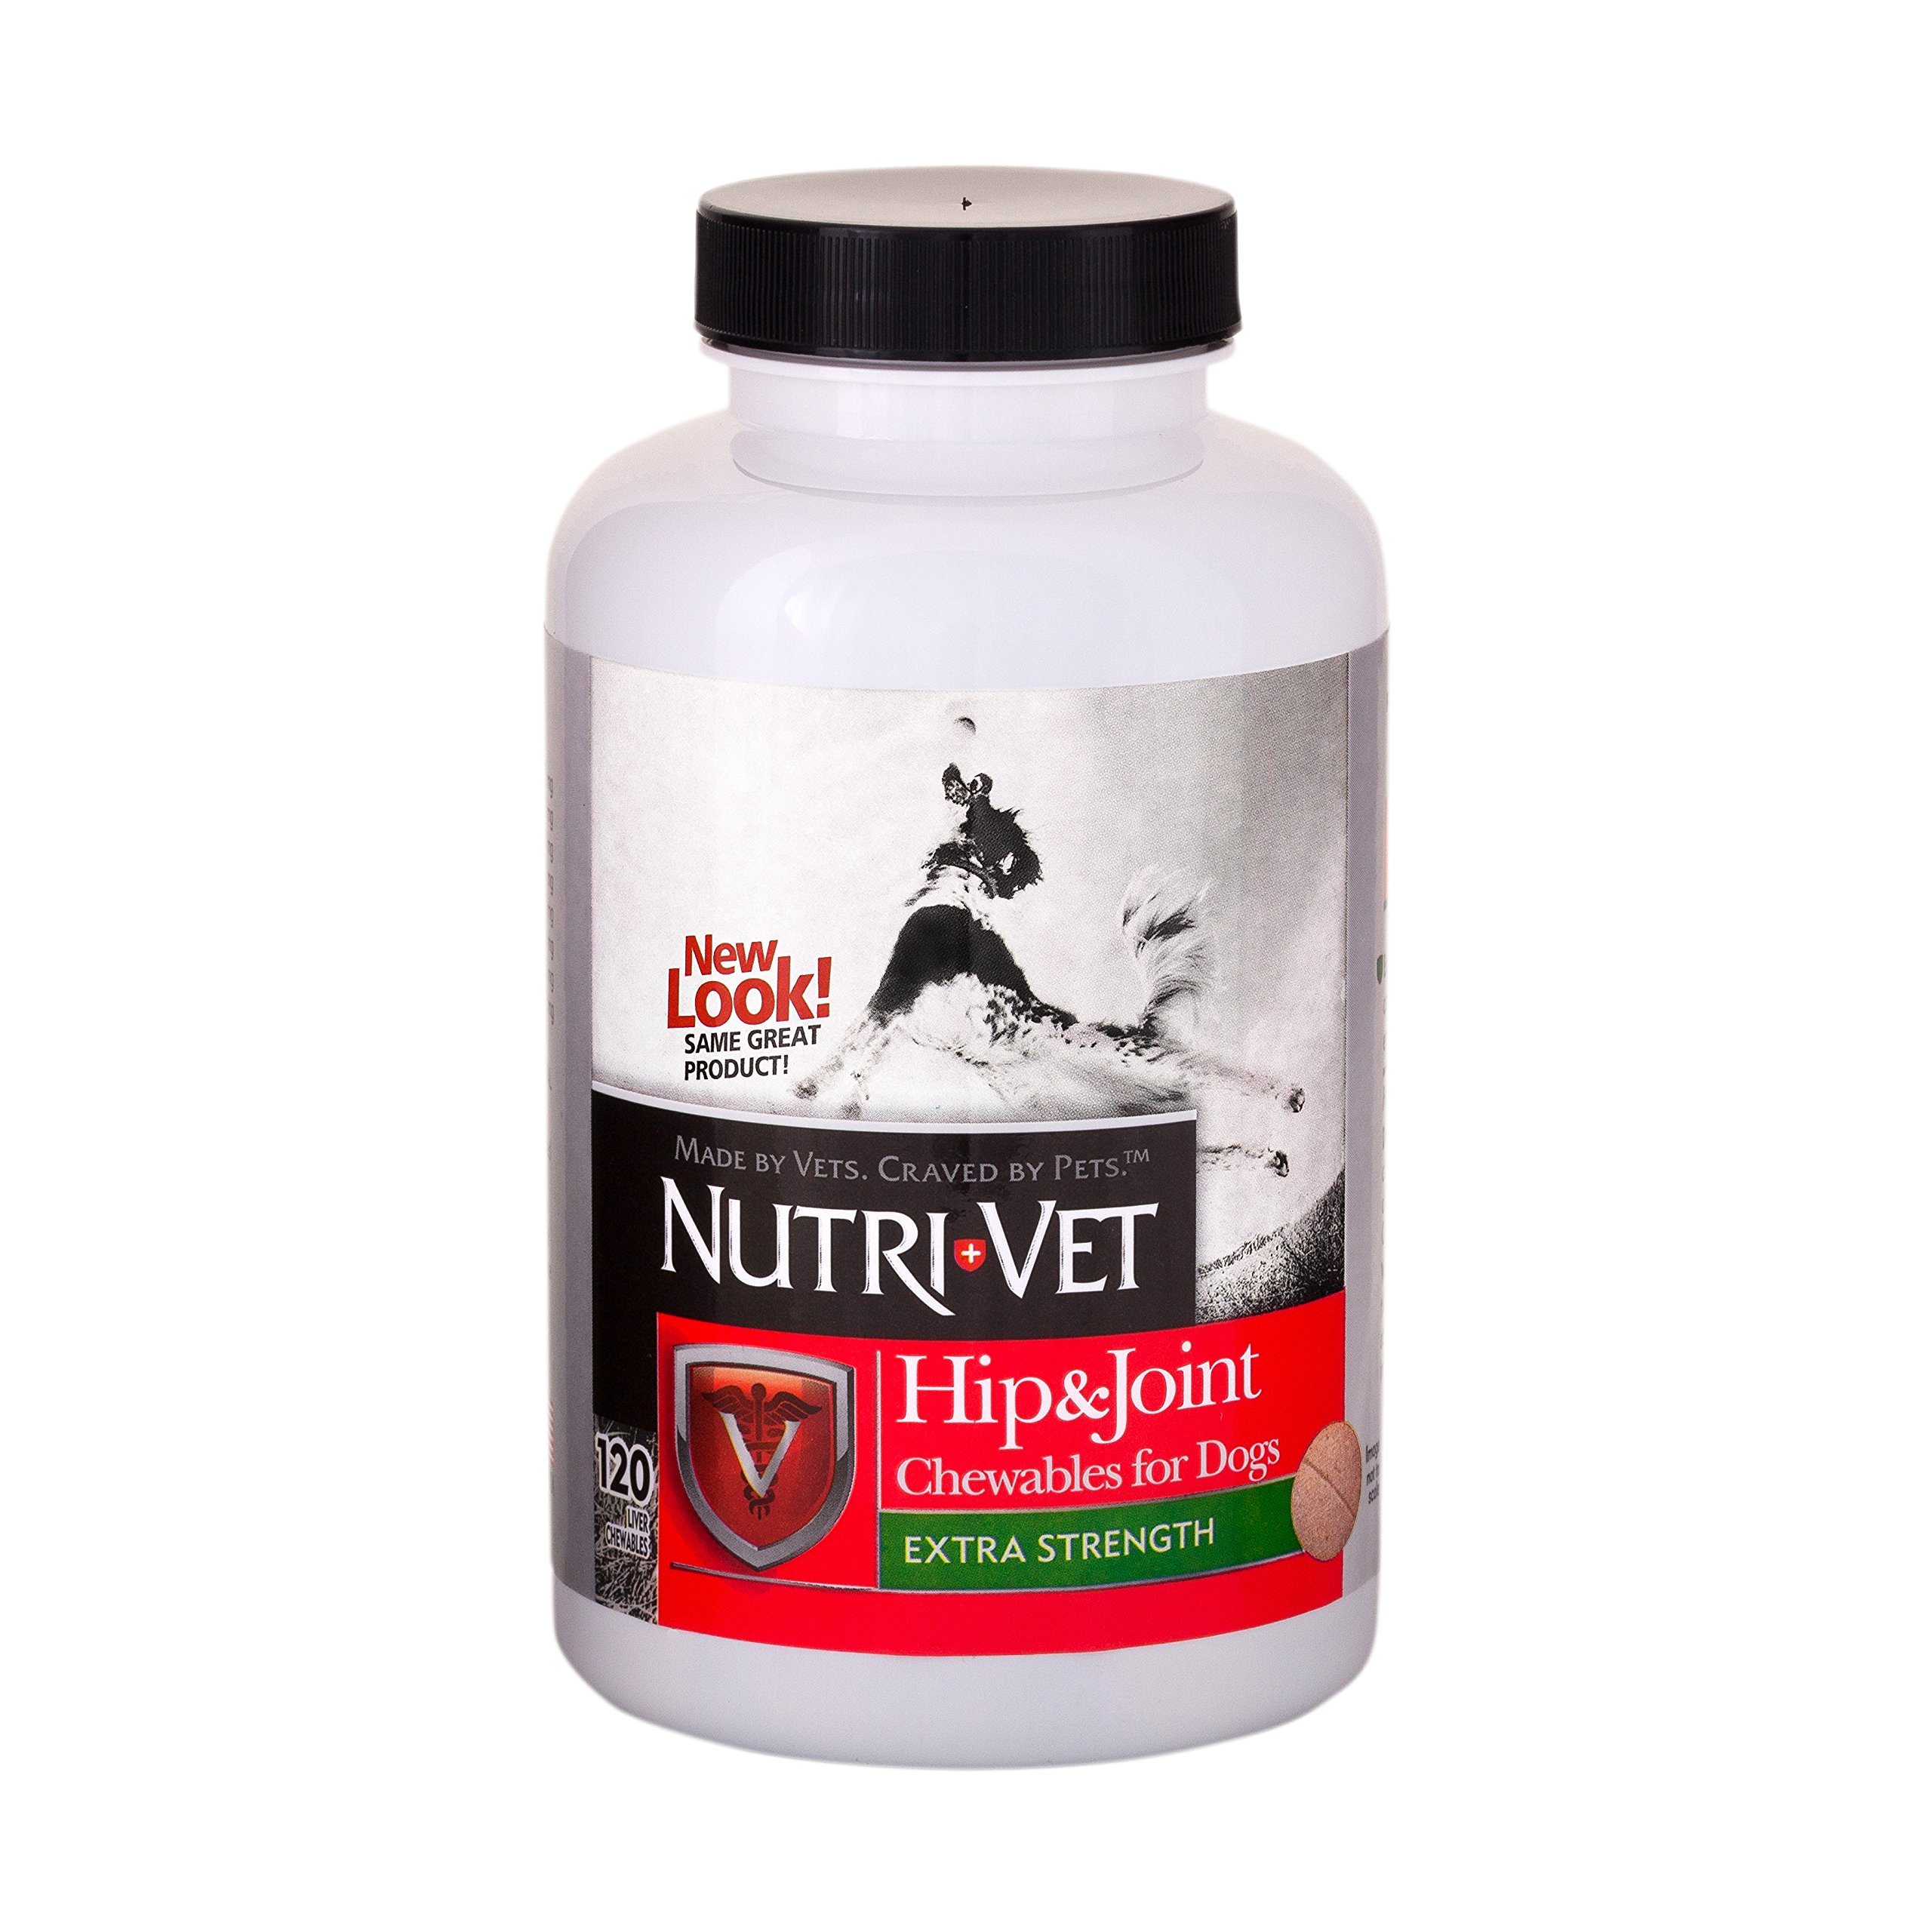 Nutri-Vet Hip & Joint Extra Strength Chewables for Dogs, 120 Count